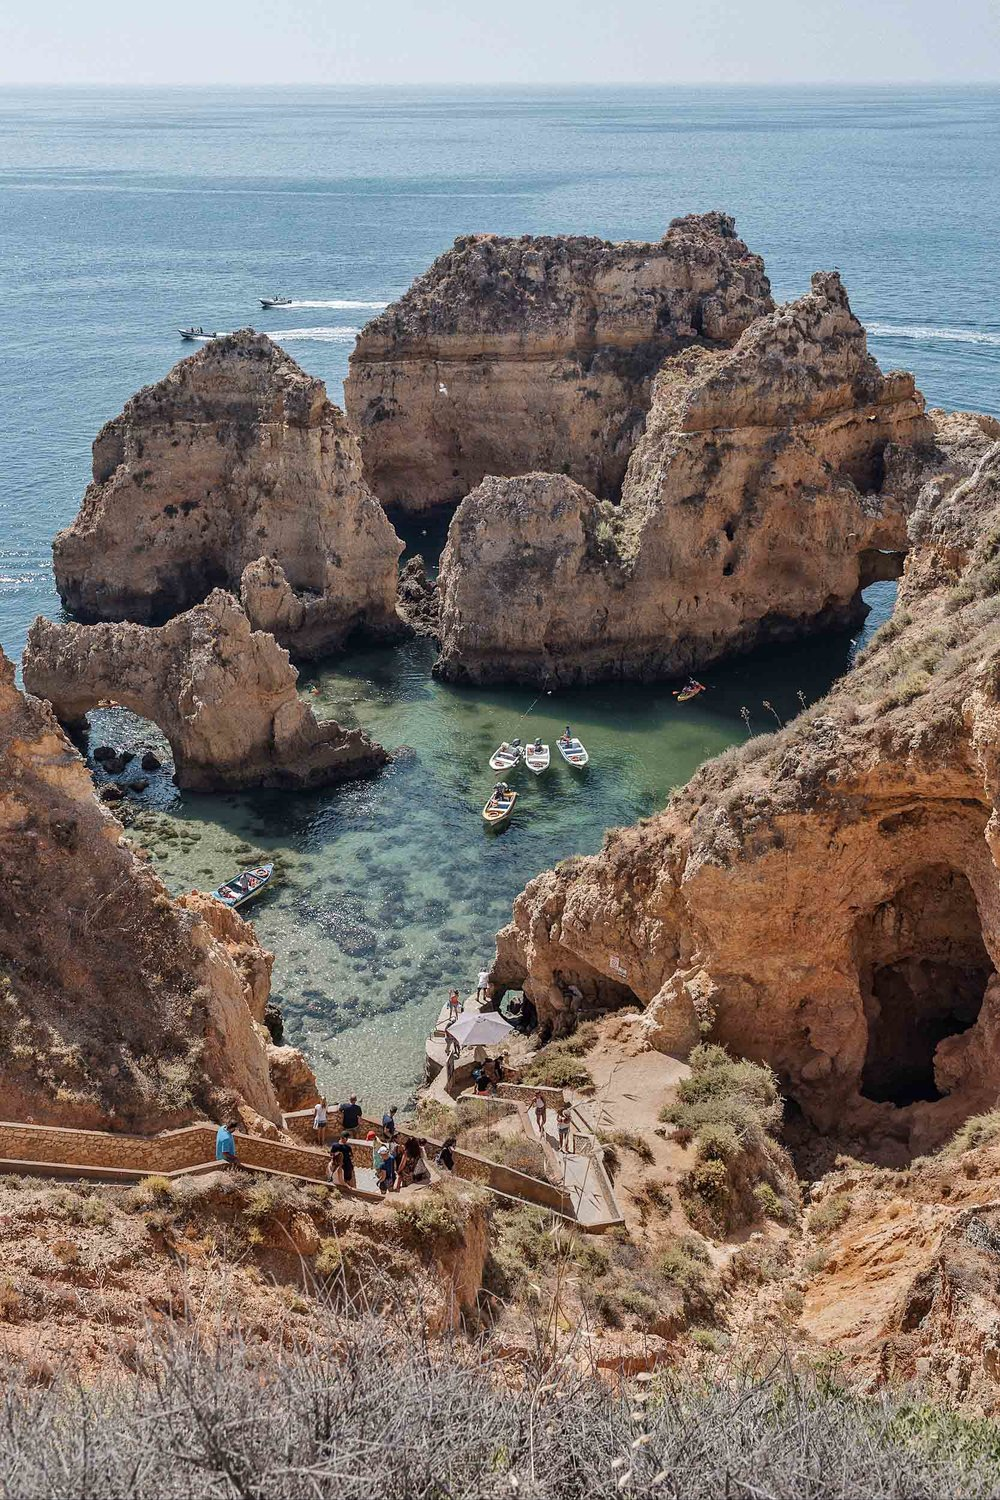 The perfect Portugal itinerary includes a visit to Lagos in the Algarve